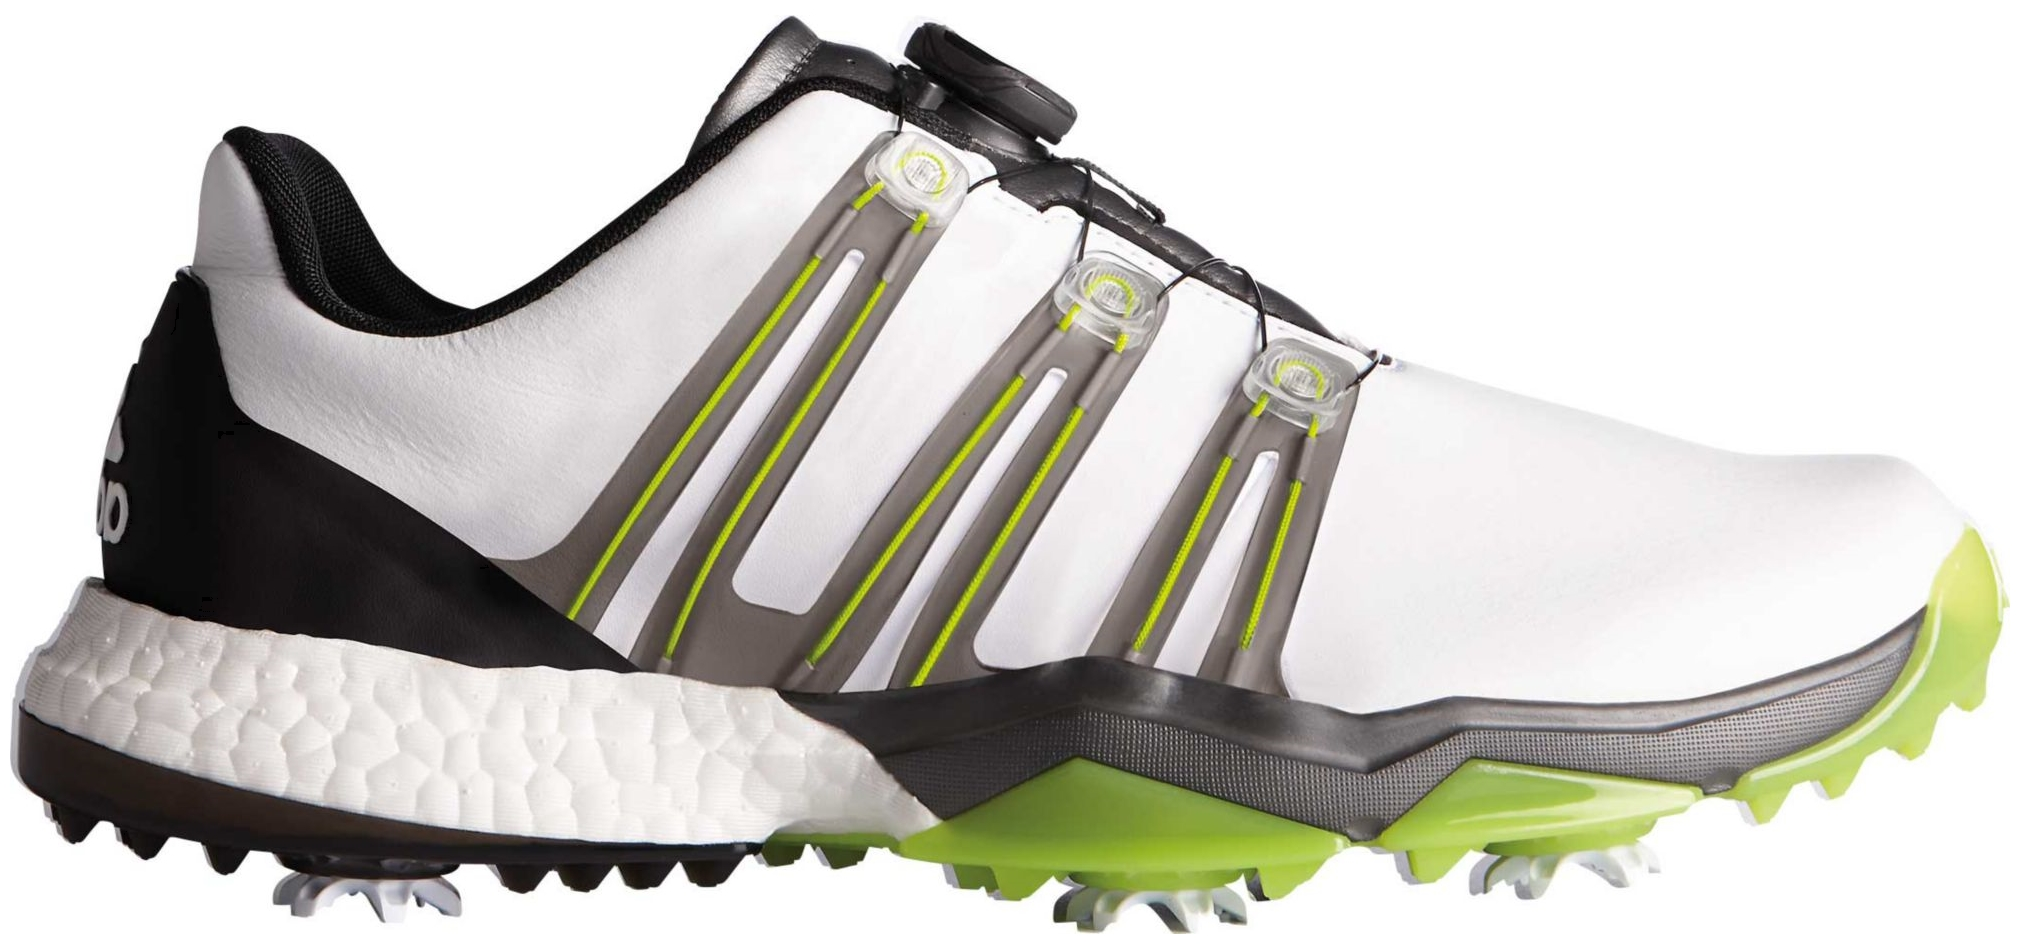 adidas powerband Boa BOOST Golf Shoes by